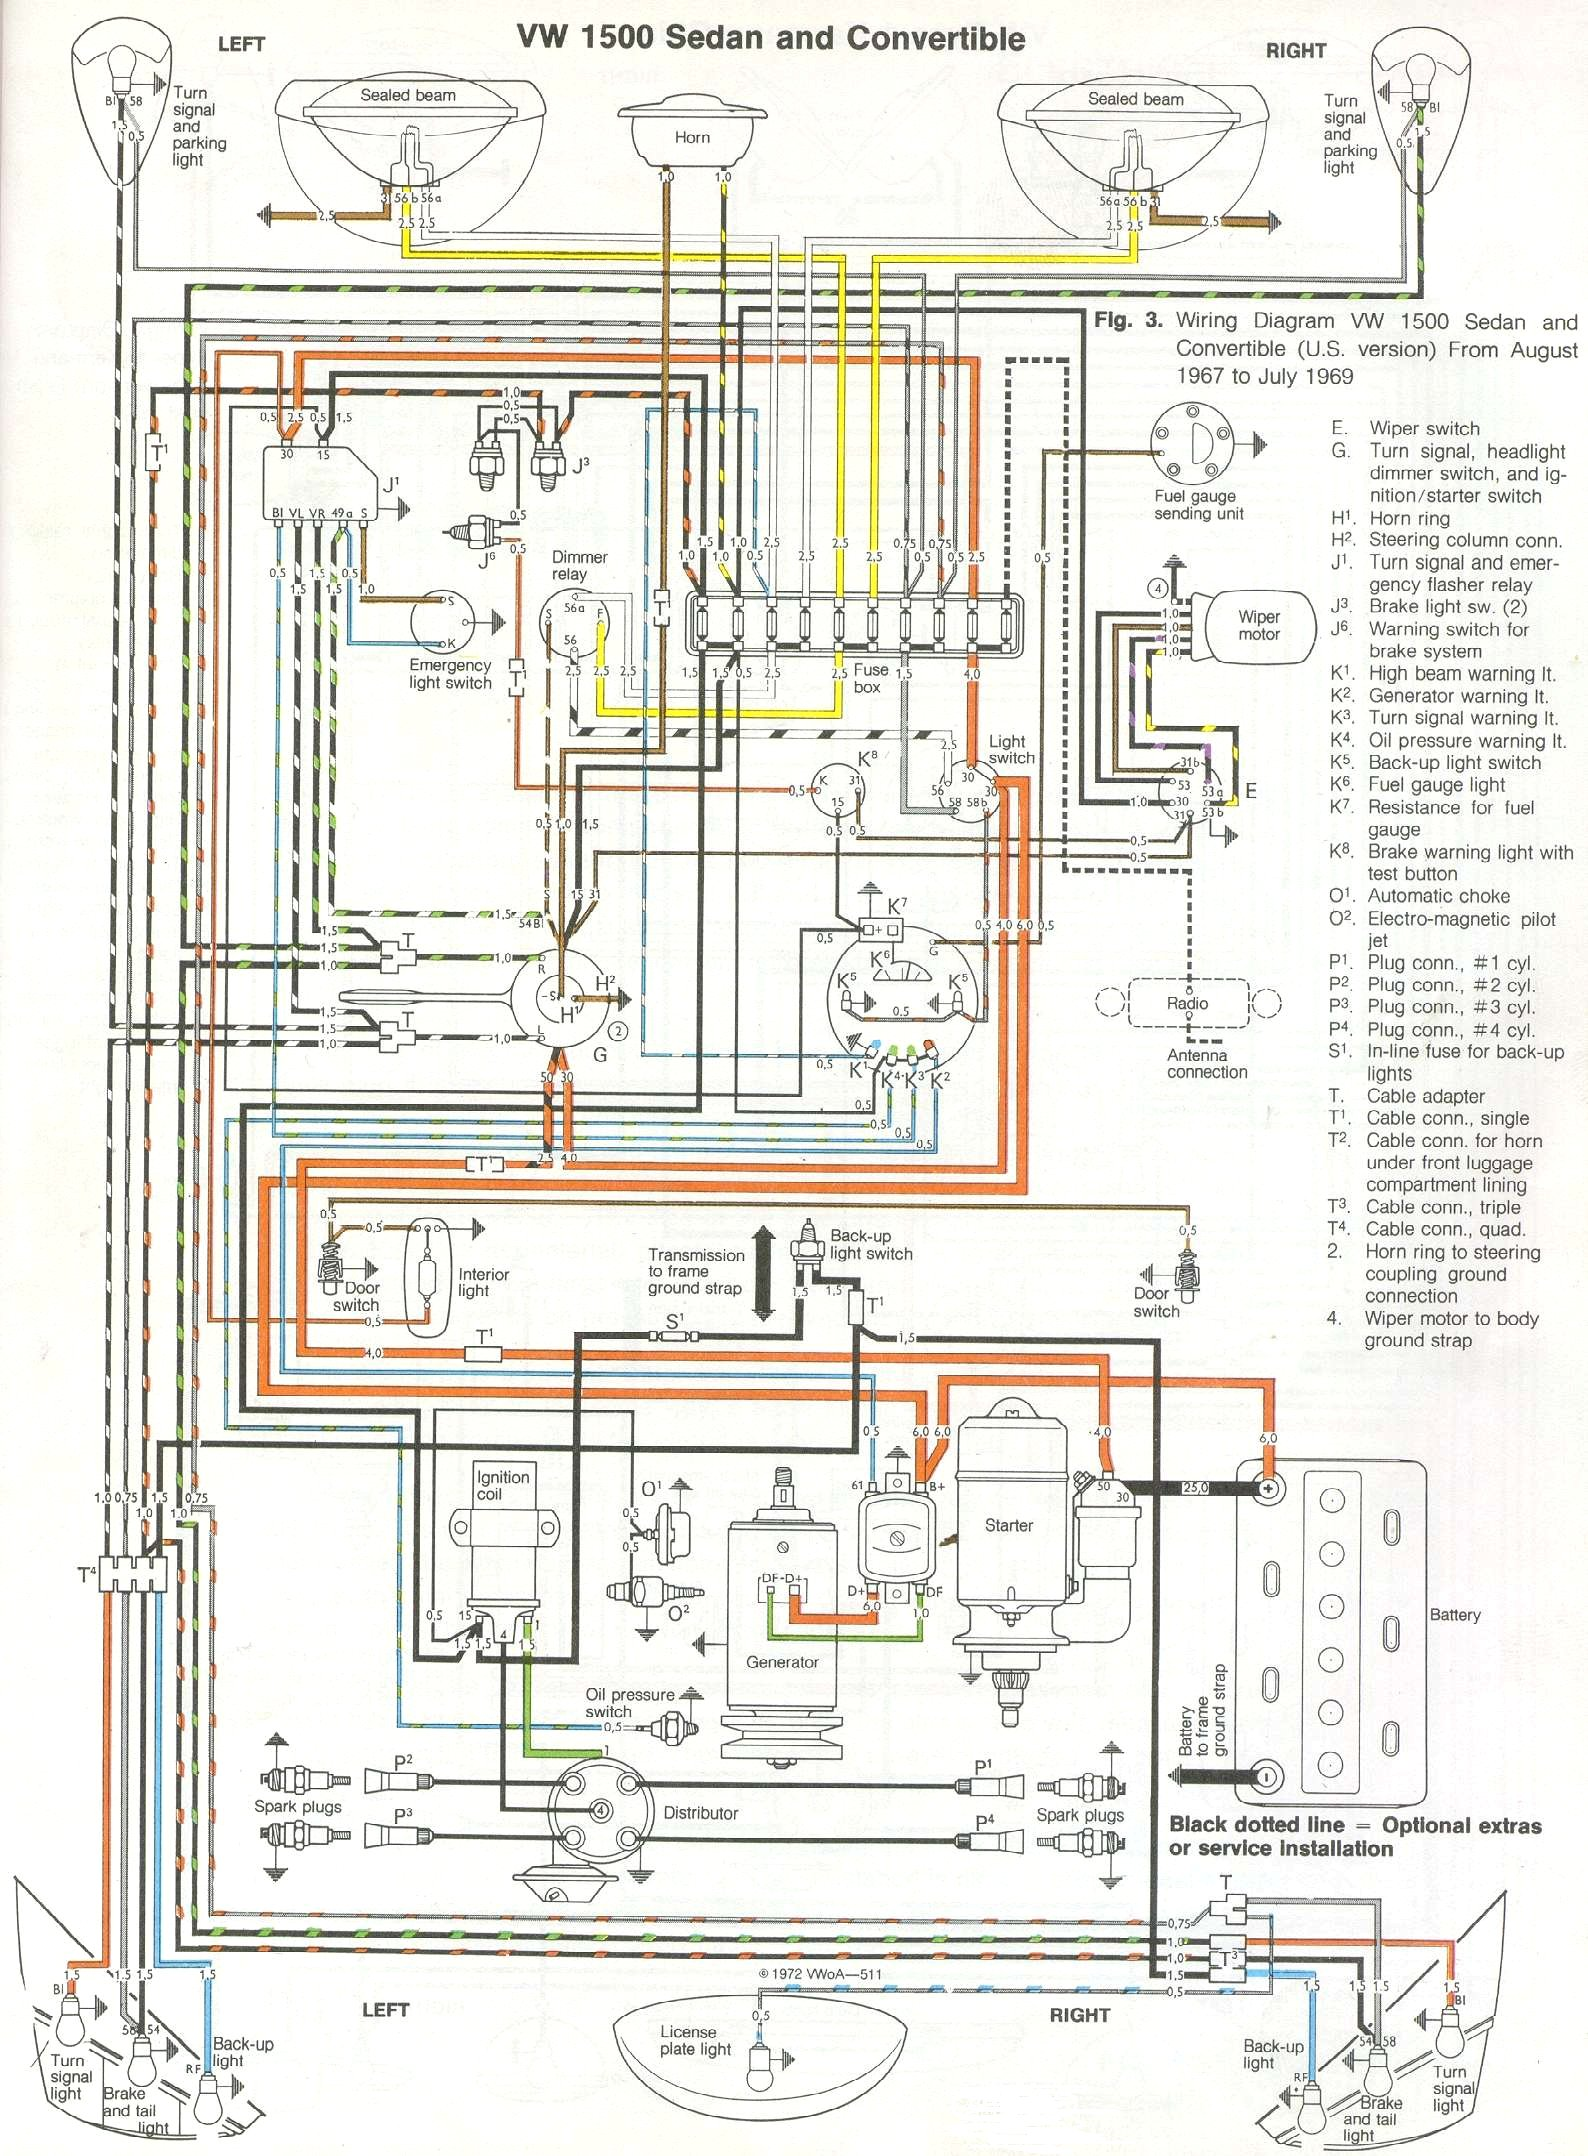 bug_6869 1969 71 beetle wiring diagram thegoldenbug com vw beetle diagrams at virtualis.co